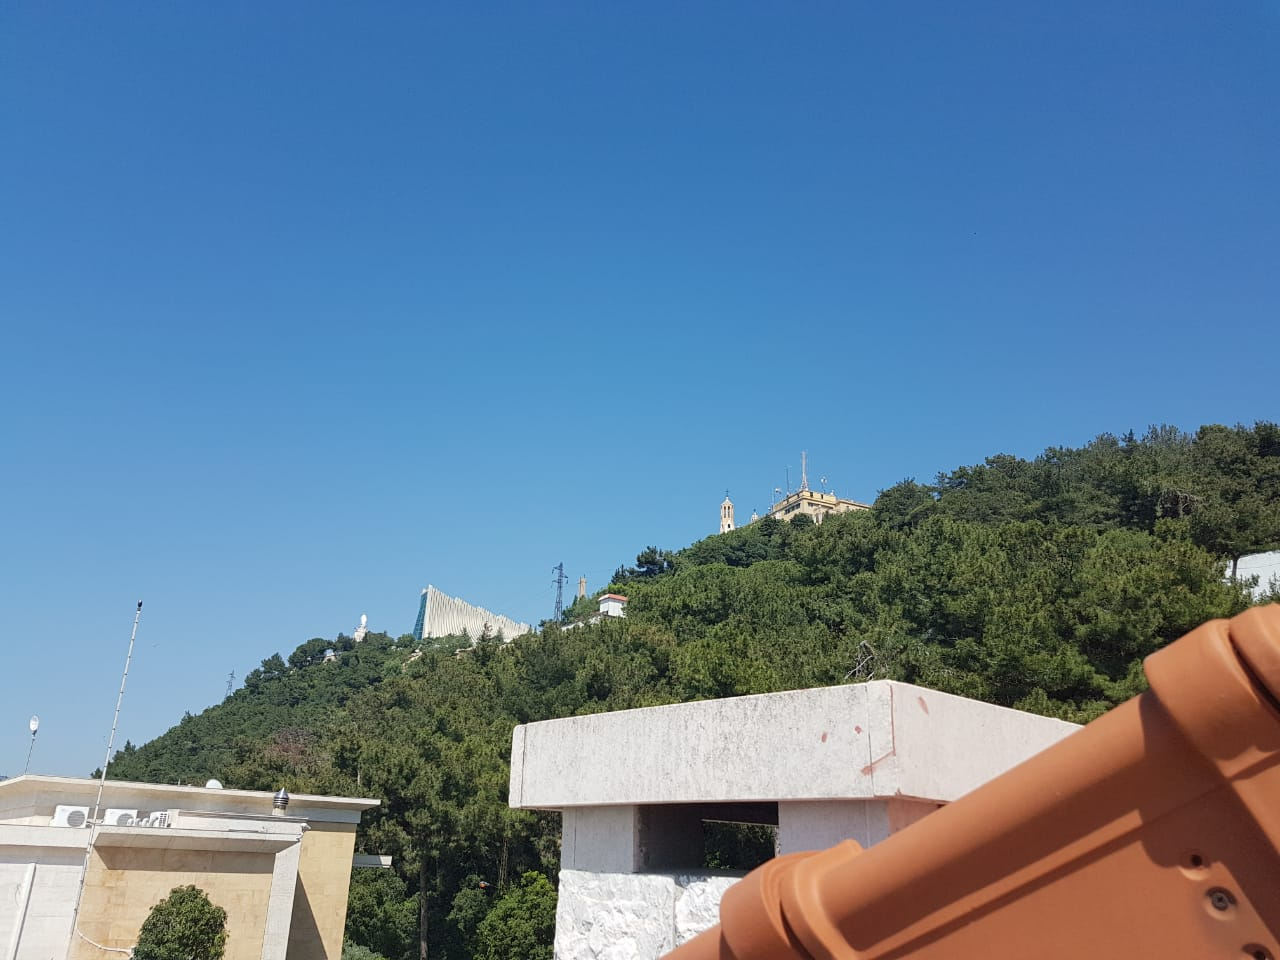 A beautiful villa for sale in harissa, Keserwan Lebanon, real estate in jounieh Lebanon, buy sell properties in jounieh harissa lebanon